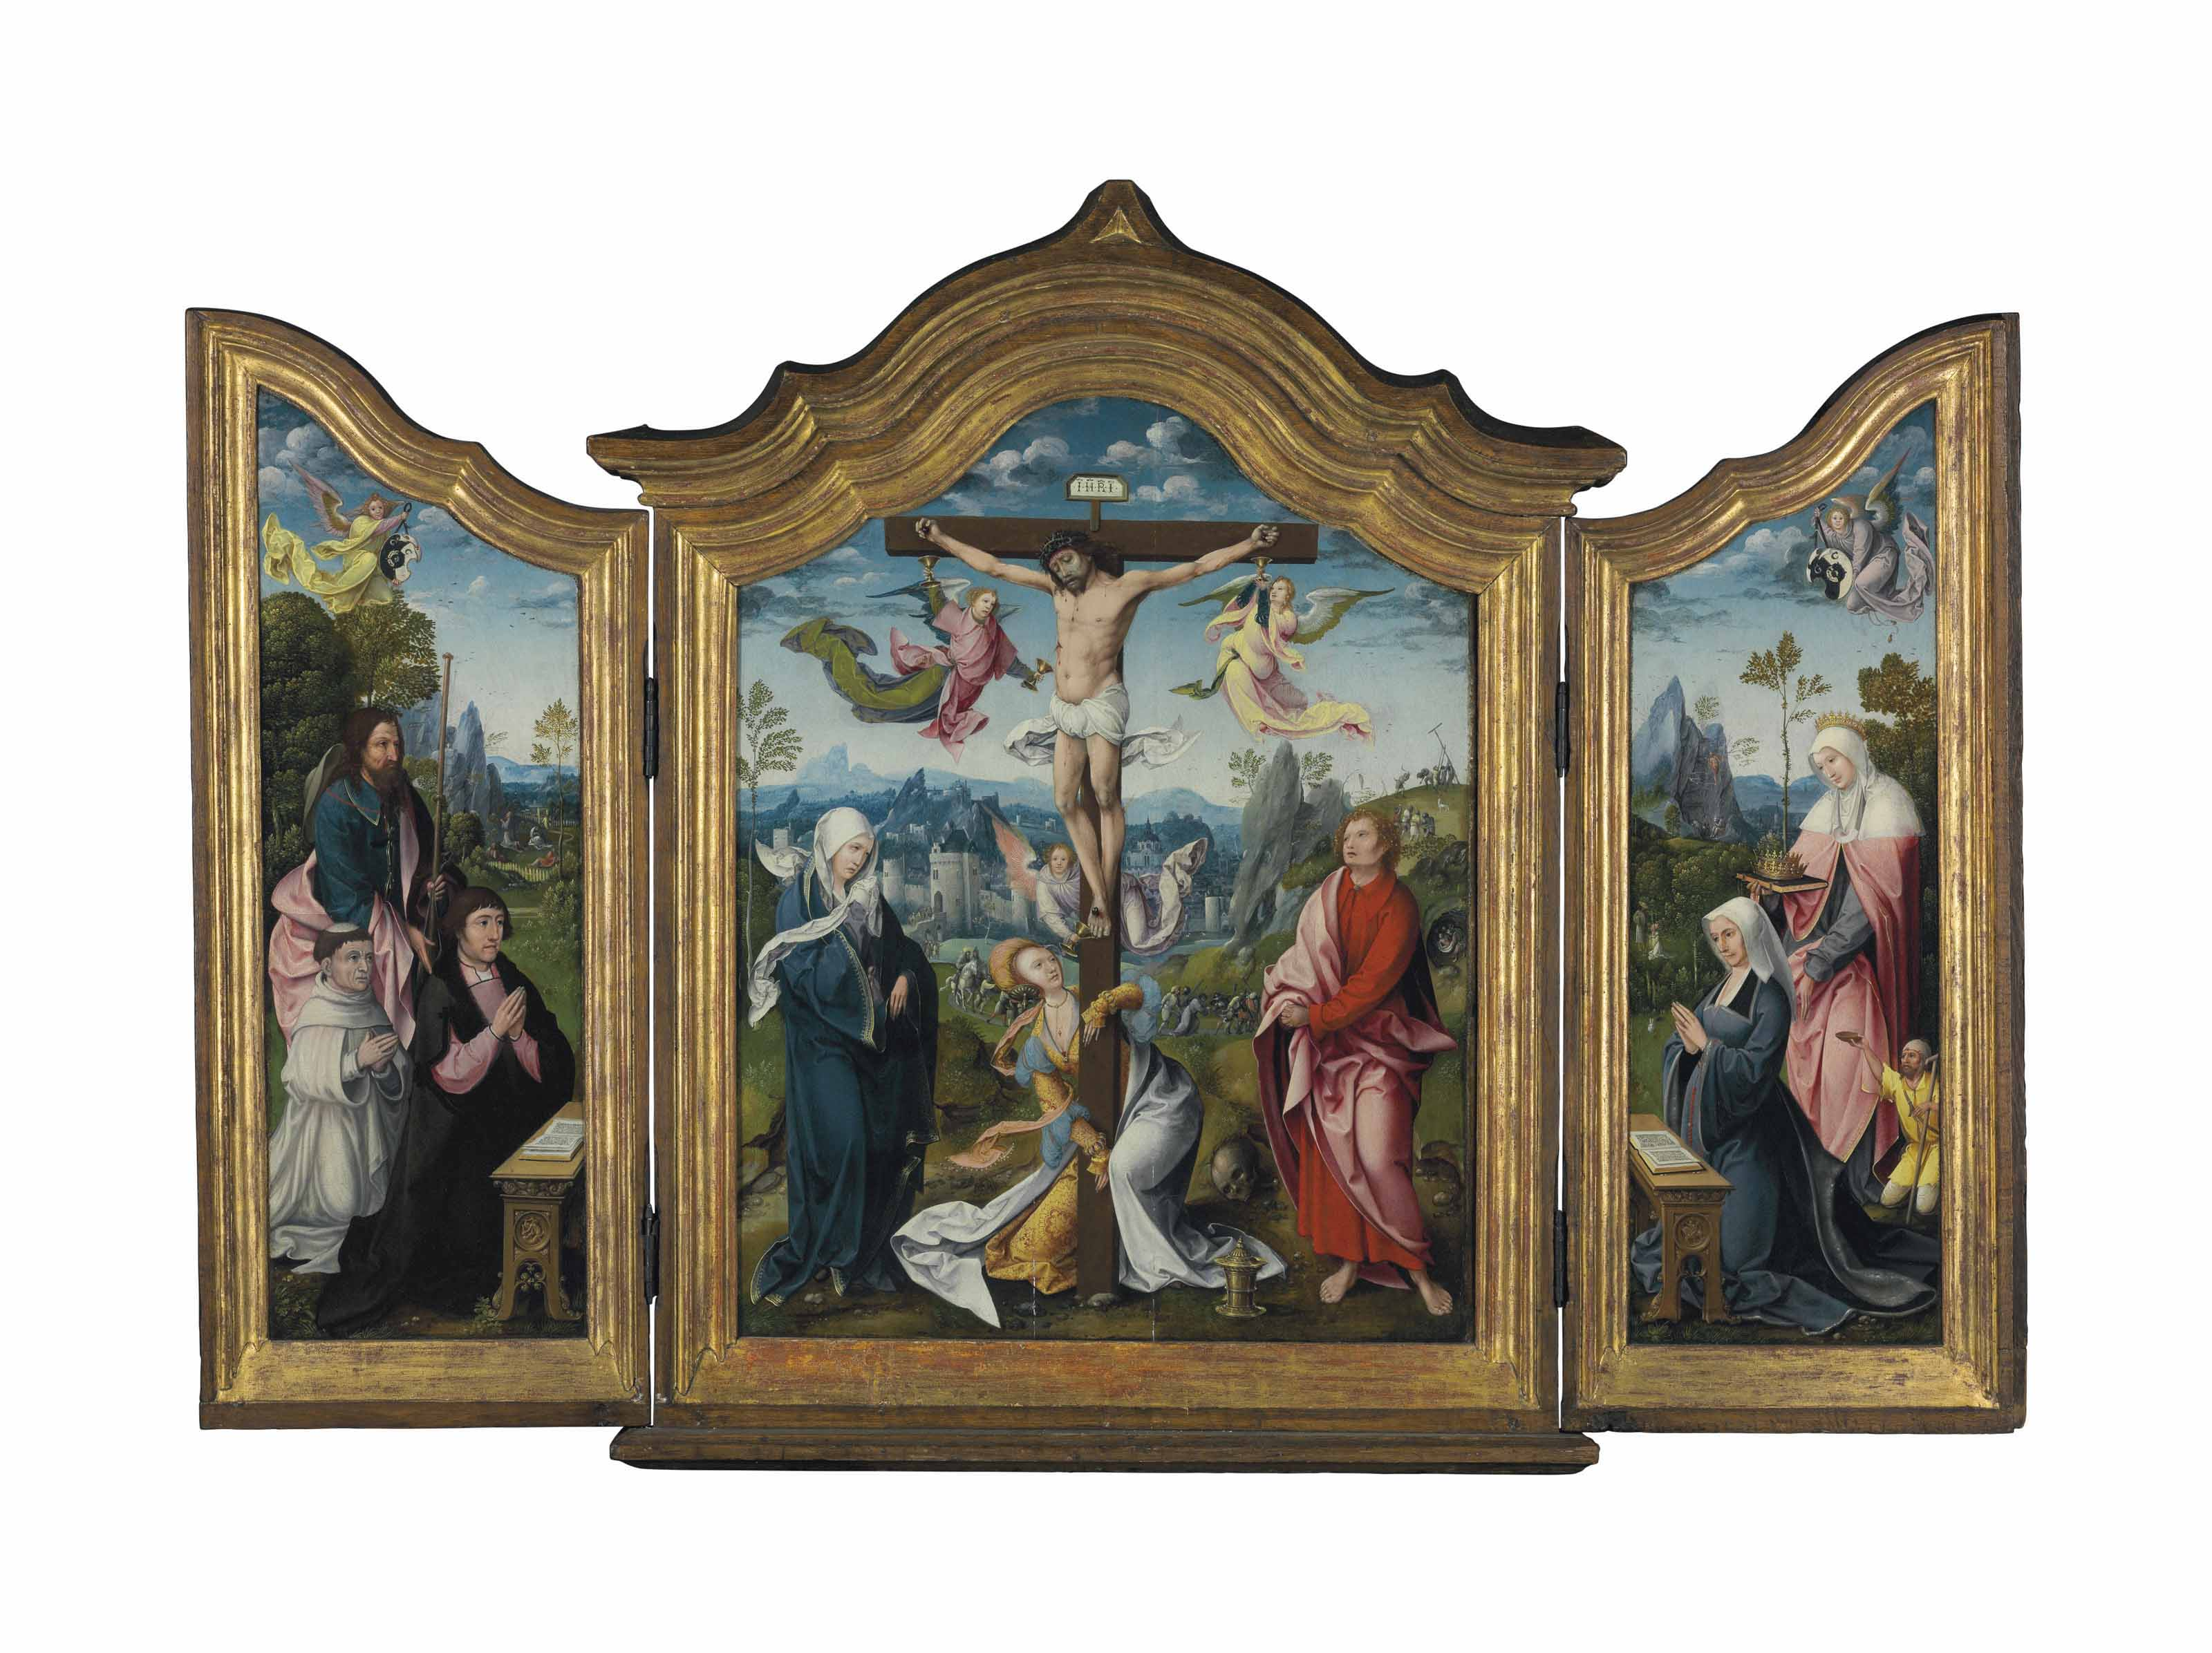 A triptych: the central panel: The Crucifixion; the wings: the inner faces: A Donor, Saint James, a Carthusian monk with an angel and Christ in the Garden of Gethsemane; A Donor, Saint Elizabeth of Hungary, a beggar with an angel and Christ Appearing to Mary Magdalene; the outer faces: Christ and the Virgin ministering to the damned